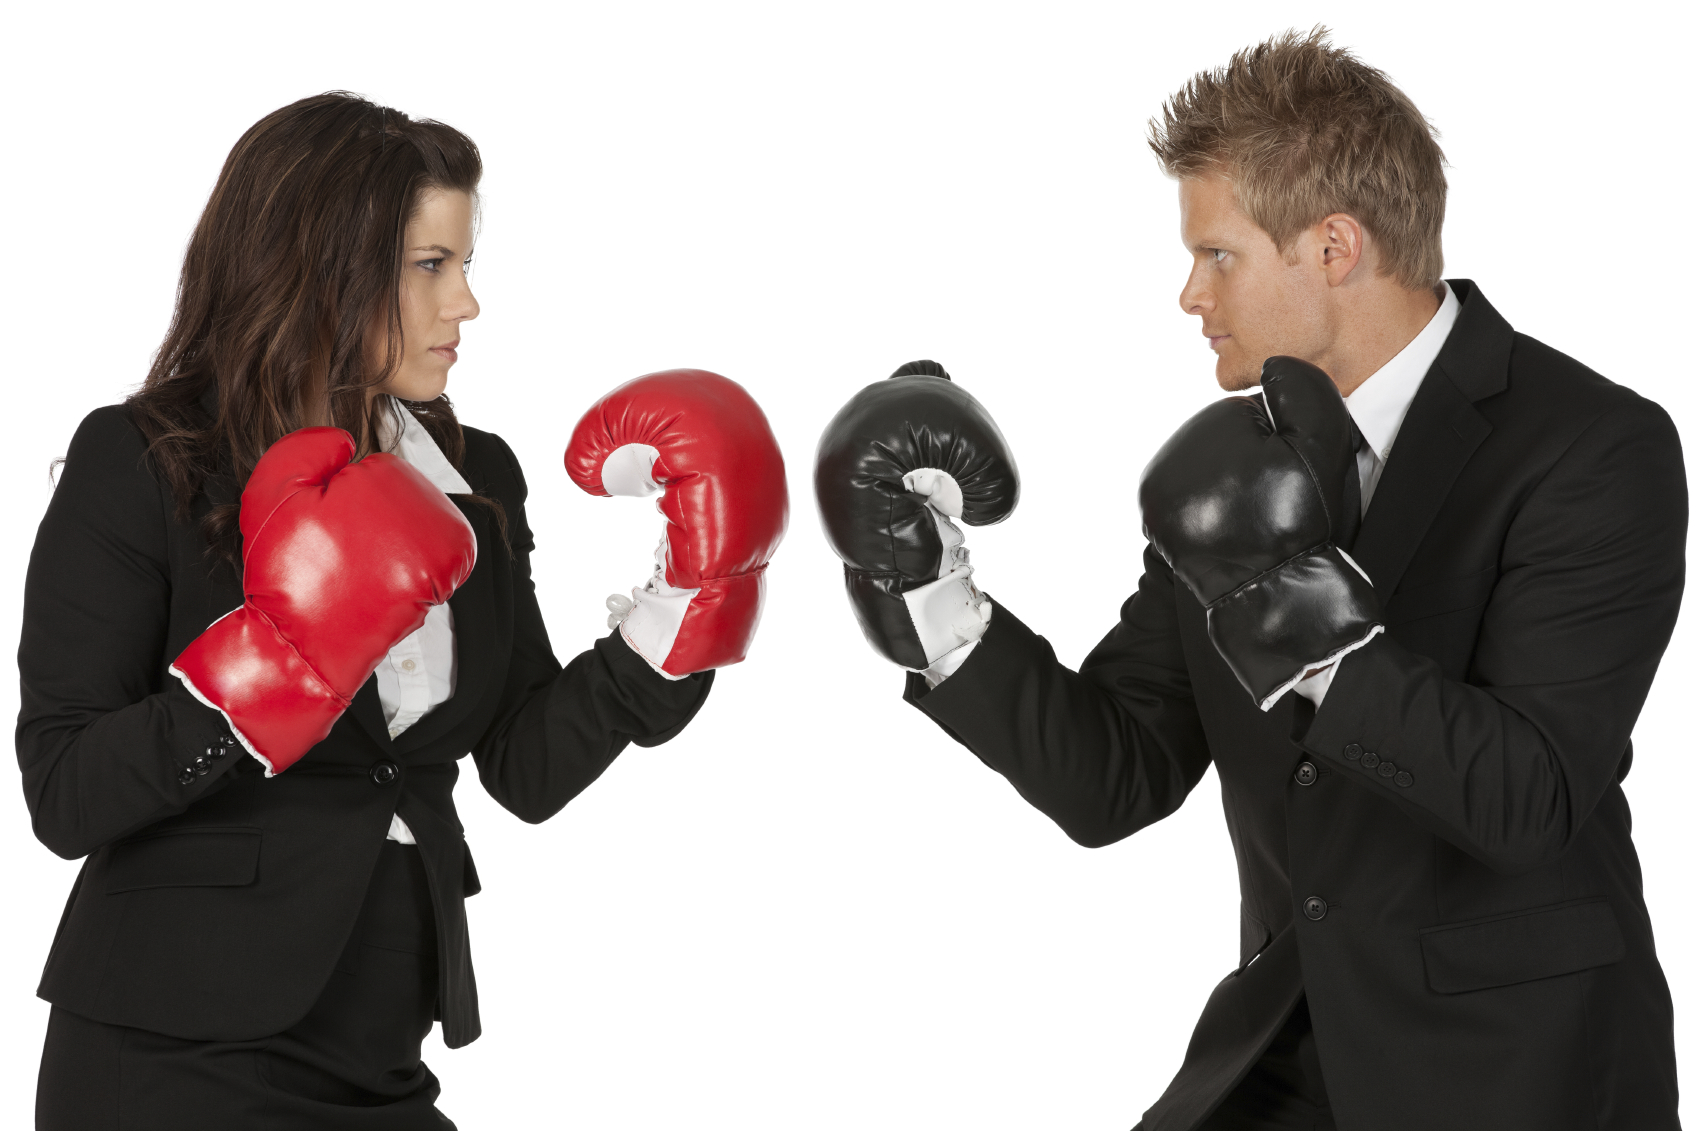 Dealing with Confrontation is a vital management skill. Global Training Institute offers training in these areas.